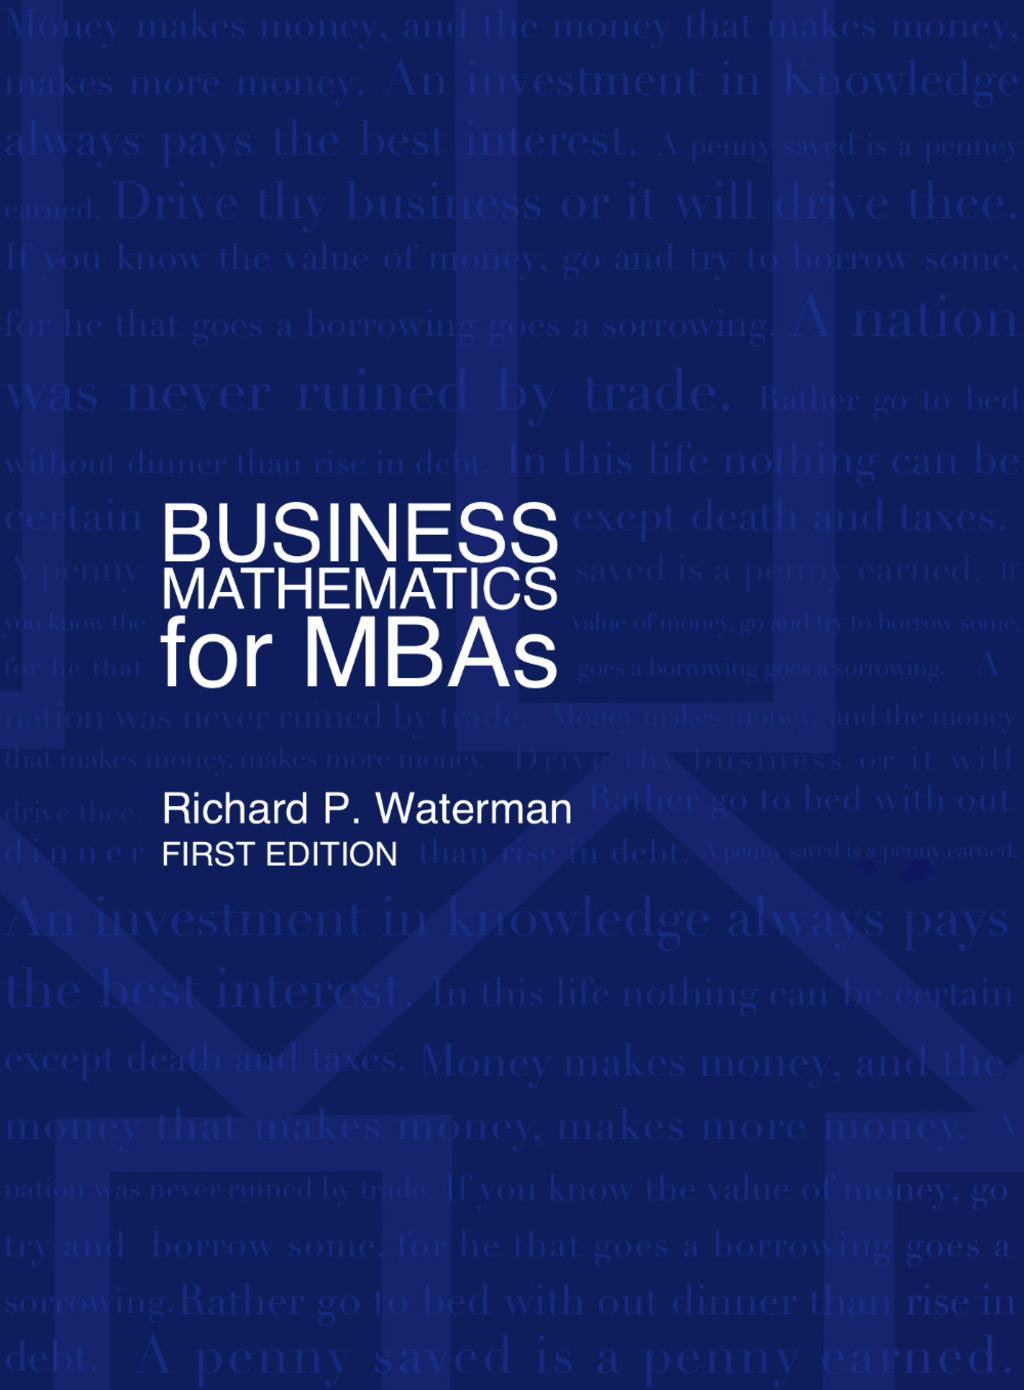 importance of business mathematics in mba Why business mathematics mathematics was always essential in analyzing markets, production systems and business operation in general the quantification of business activities than intensified in the beginning of the 20th century, took explosive proportions in the 70\'s and contributed to the reformulation of whole fields such as banking and.